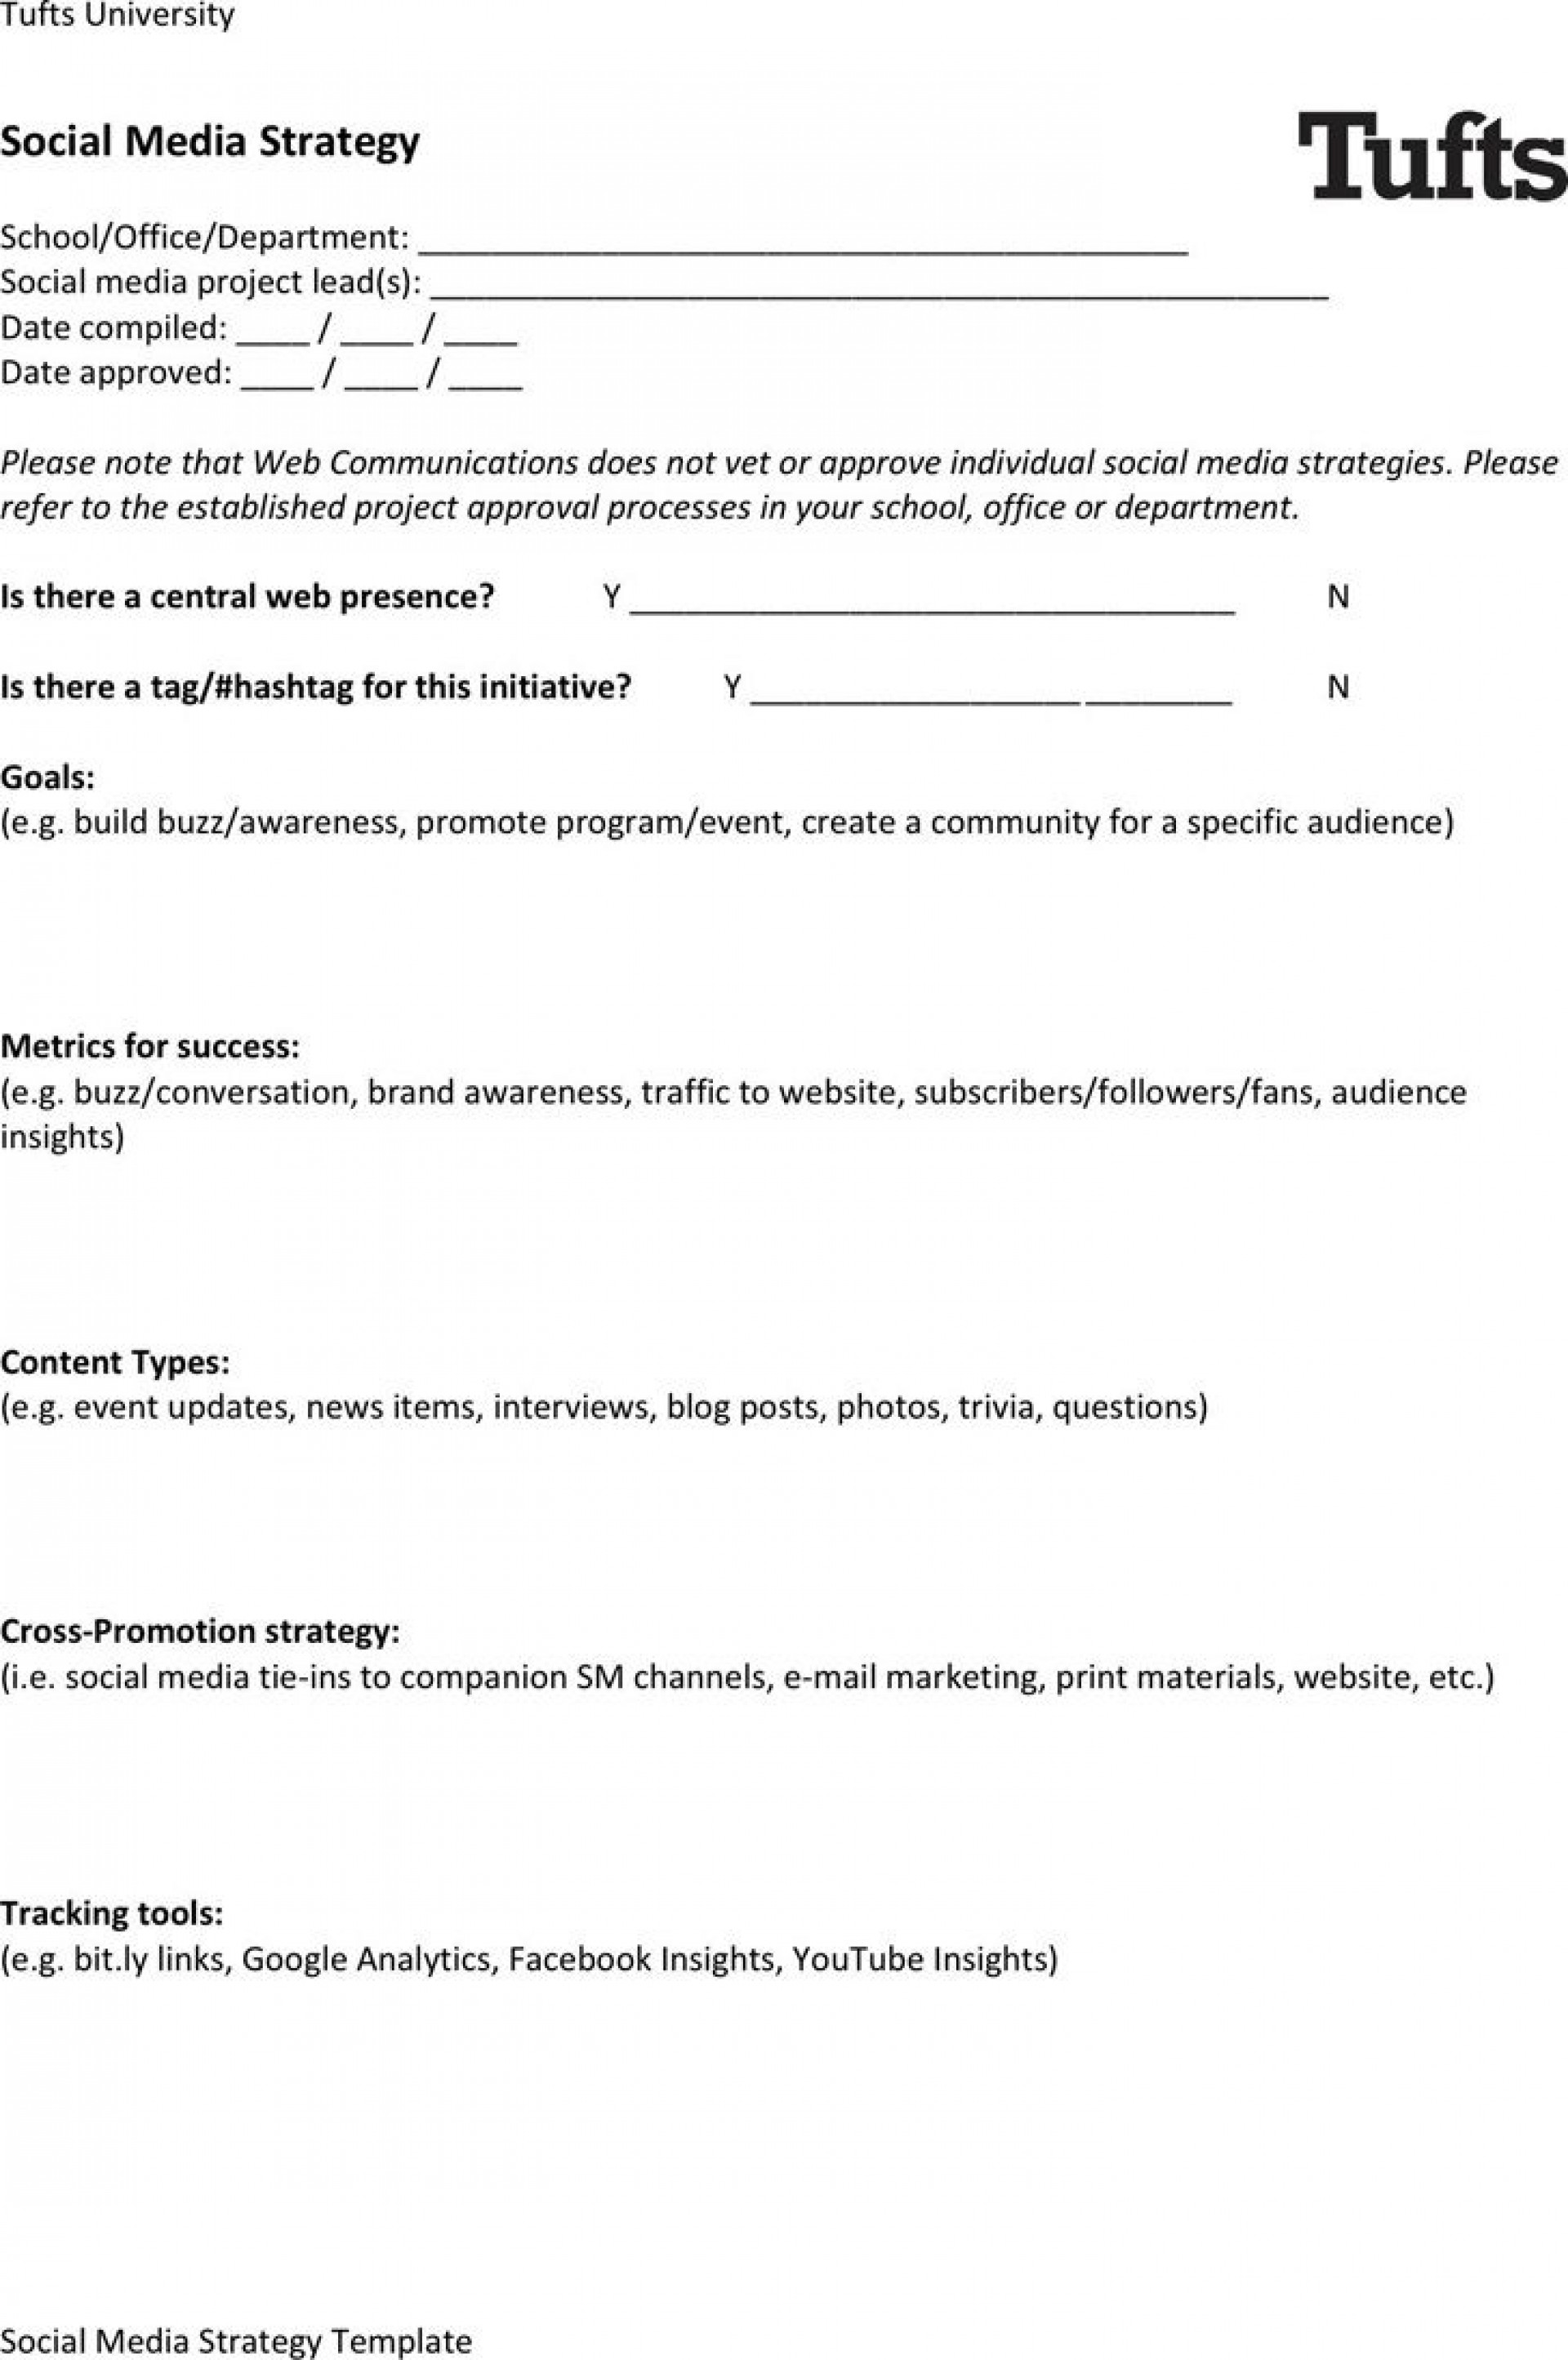 005 Outstanding Social Media Strategy Template Pdf Example  Sample Content1920